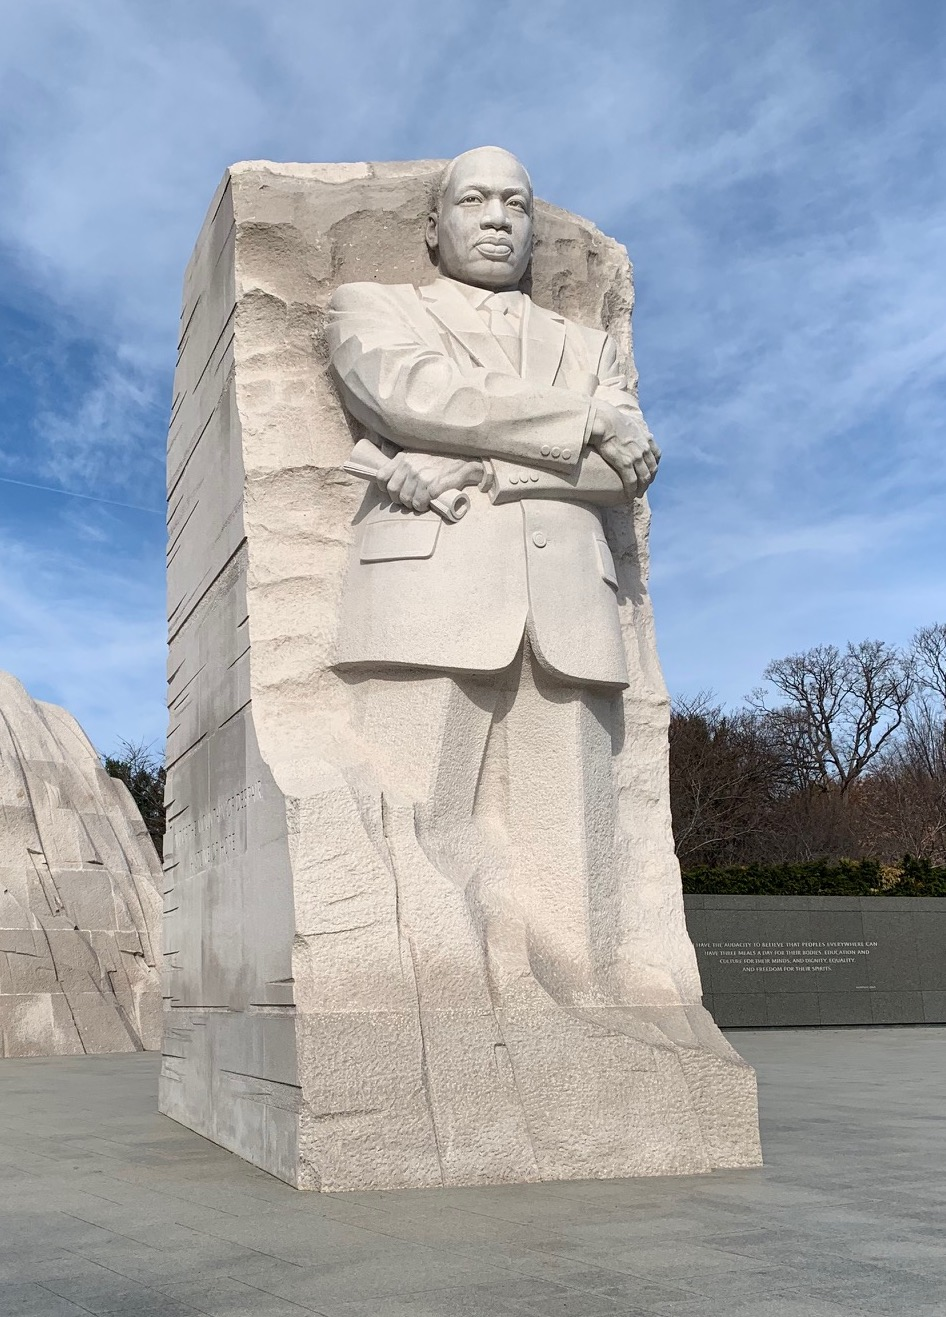 The Martin Luther King Jr. Memorial in Washington, D.C. (photo courtesy of Susan R. Wente/Vanderbilt)